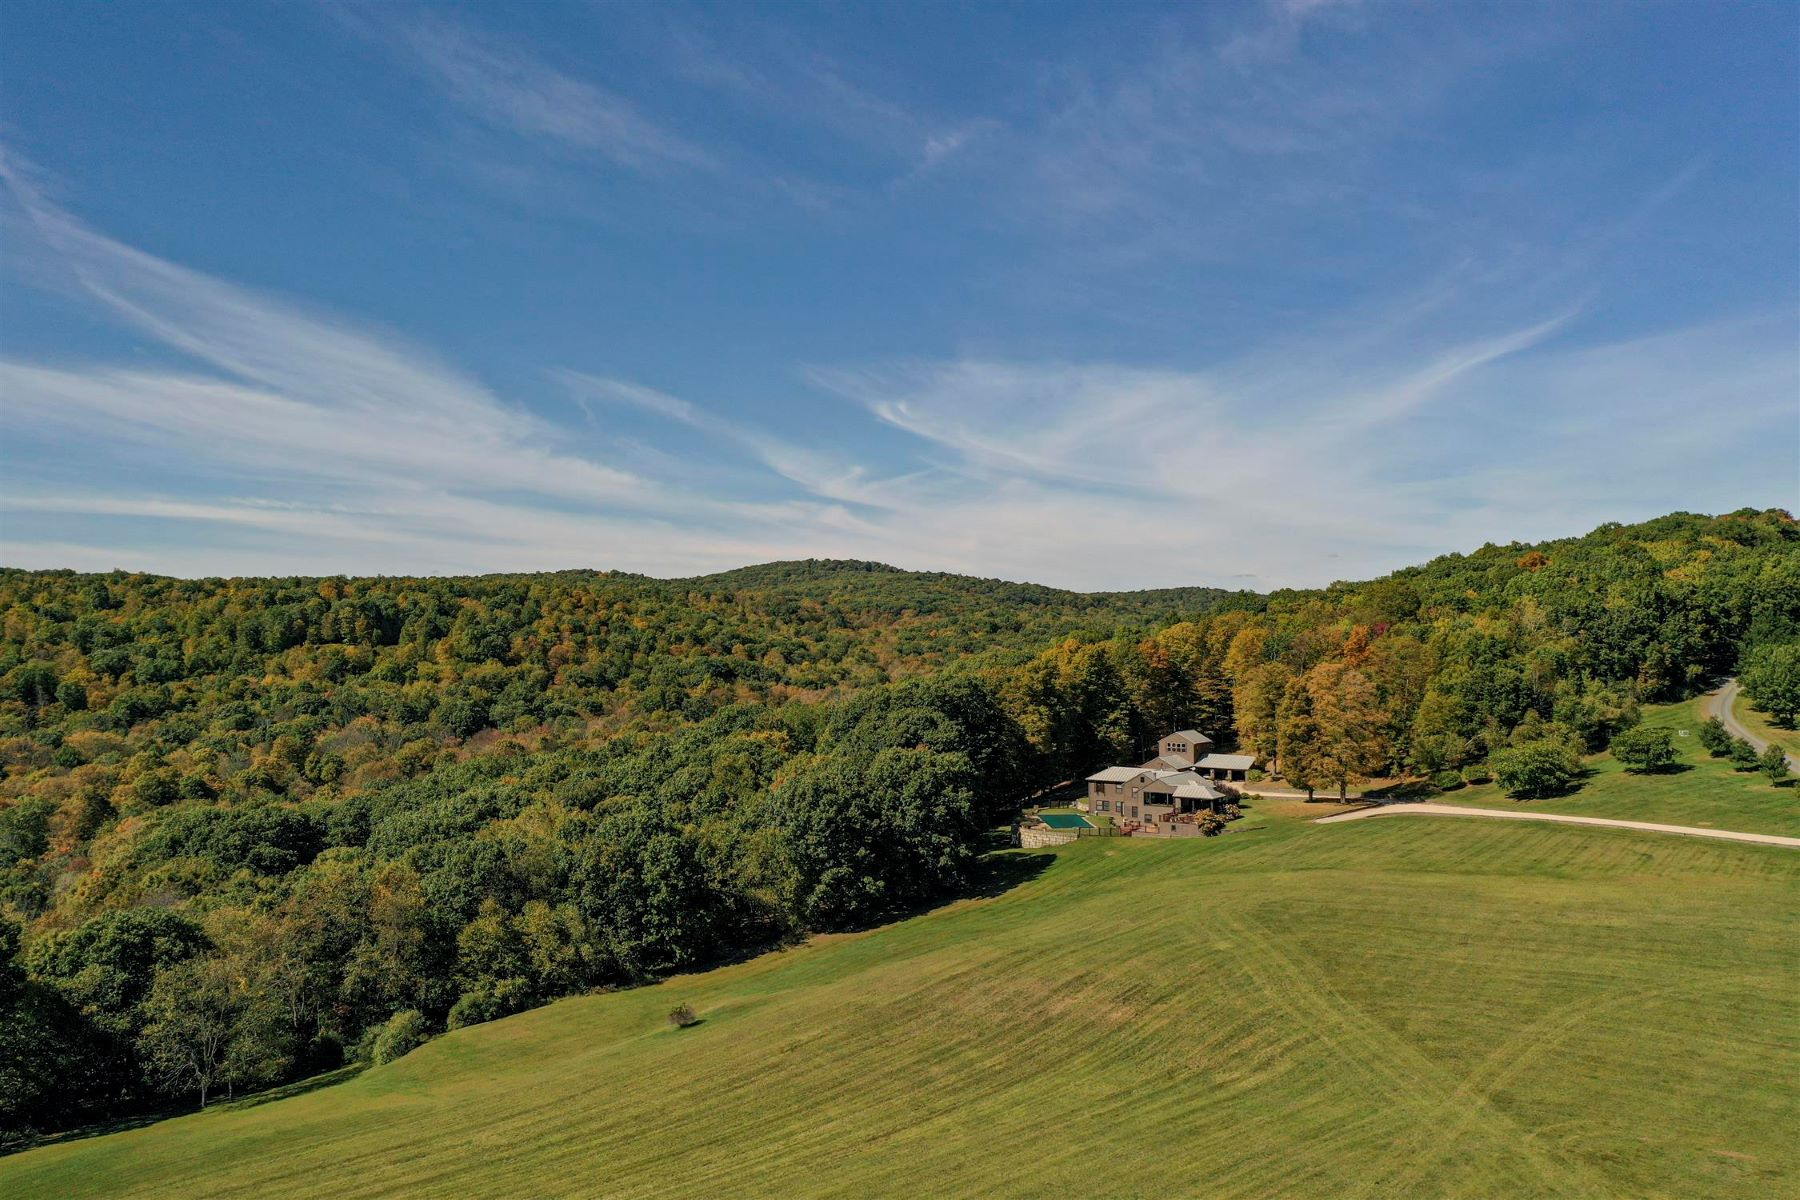 Single Family Homes for Sale at Distant Views 35 Old Gordon Farm Road Ancram, New York 12502 United States